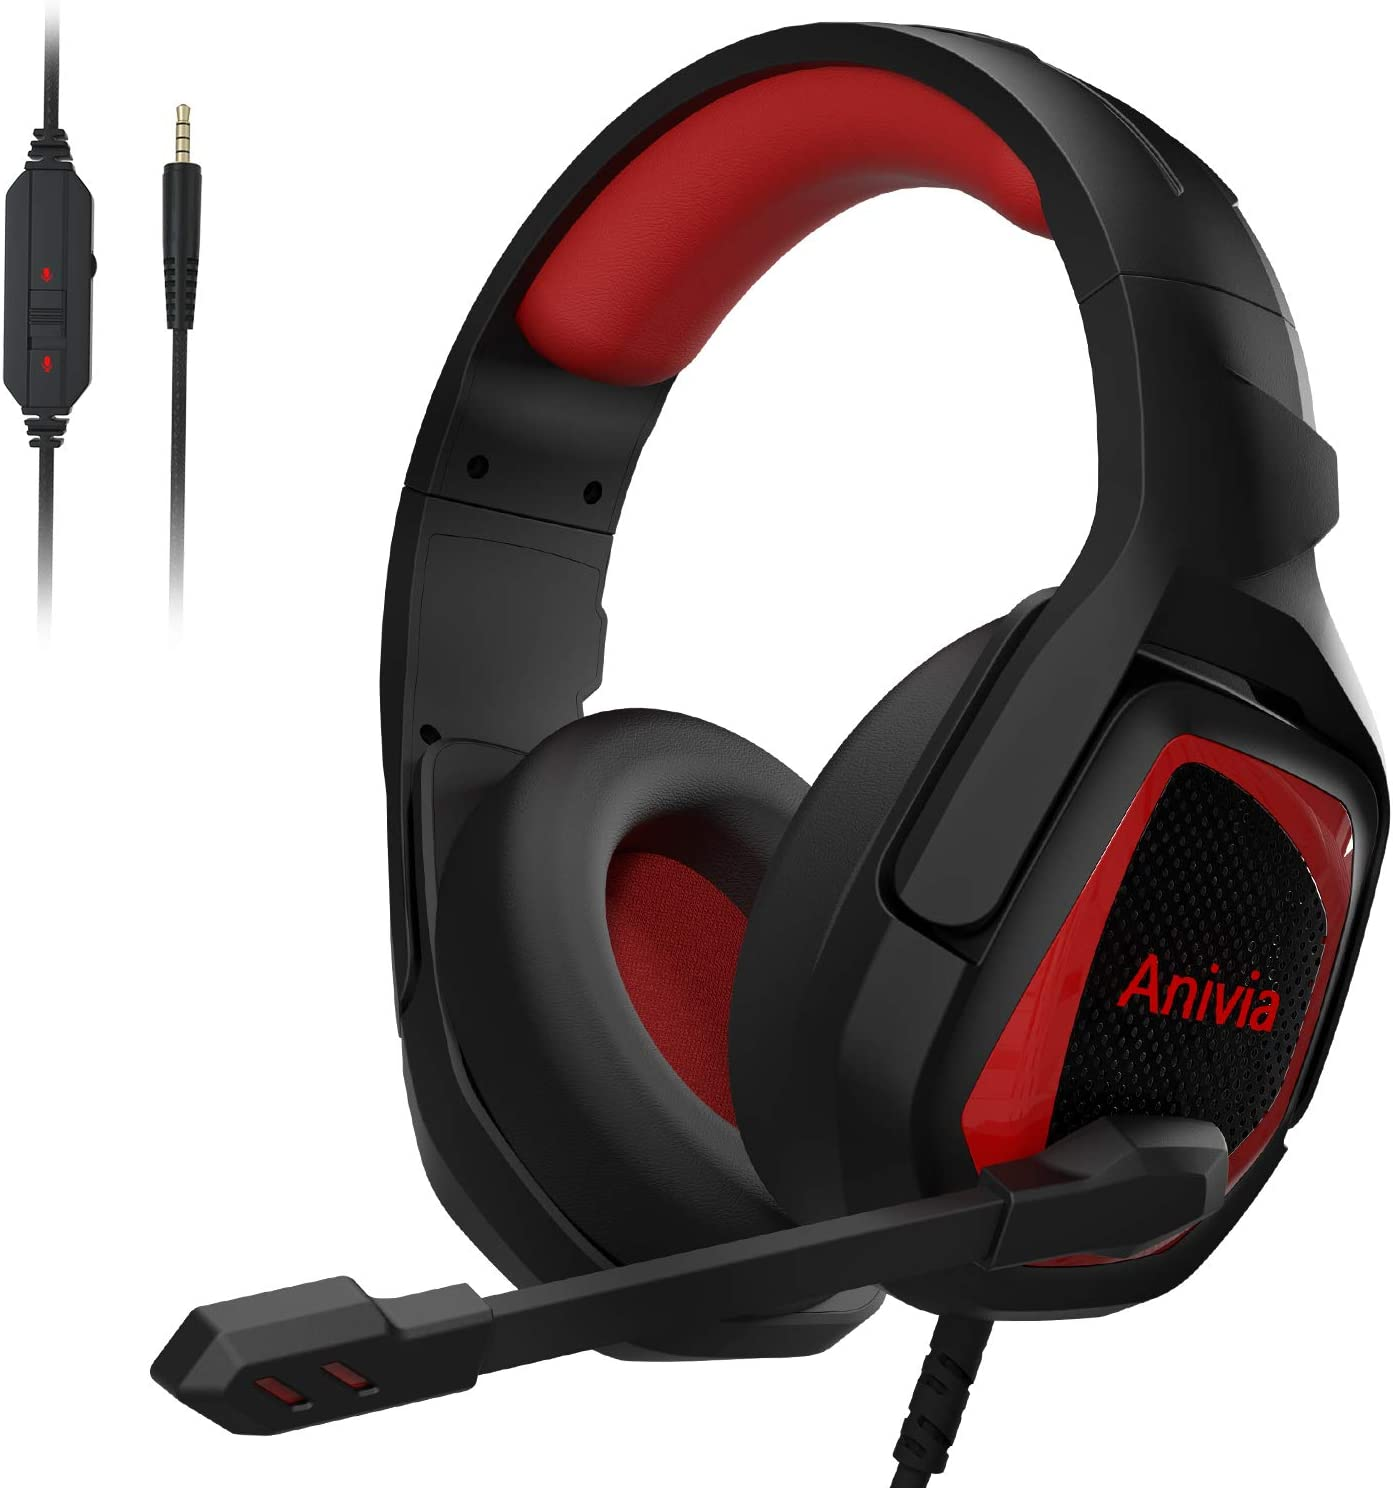 Anivia PS4 Gaming Headset for Xbox One PC Over Ear Headphones with Noise Cancelling Mic Stereo Bass Surround Headset Compatible with Laptop Mac Nintendo Switch MH602 Red